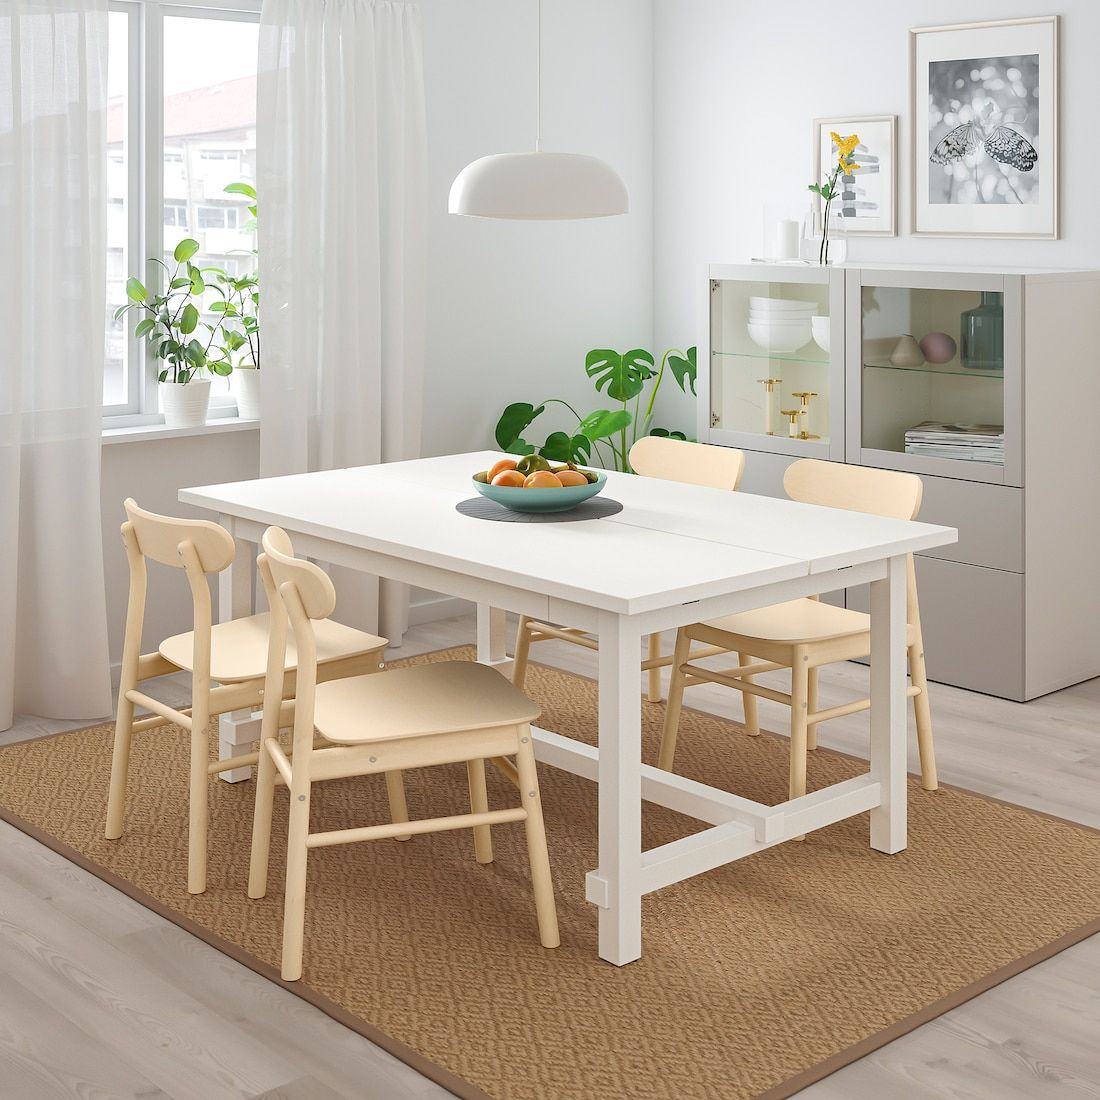 NORDVIKEN / RÖNNINGE Table and 4 chairs, white, birch